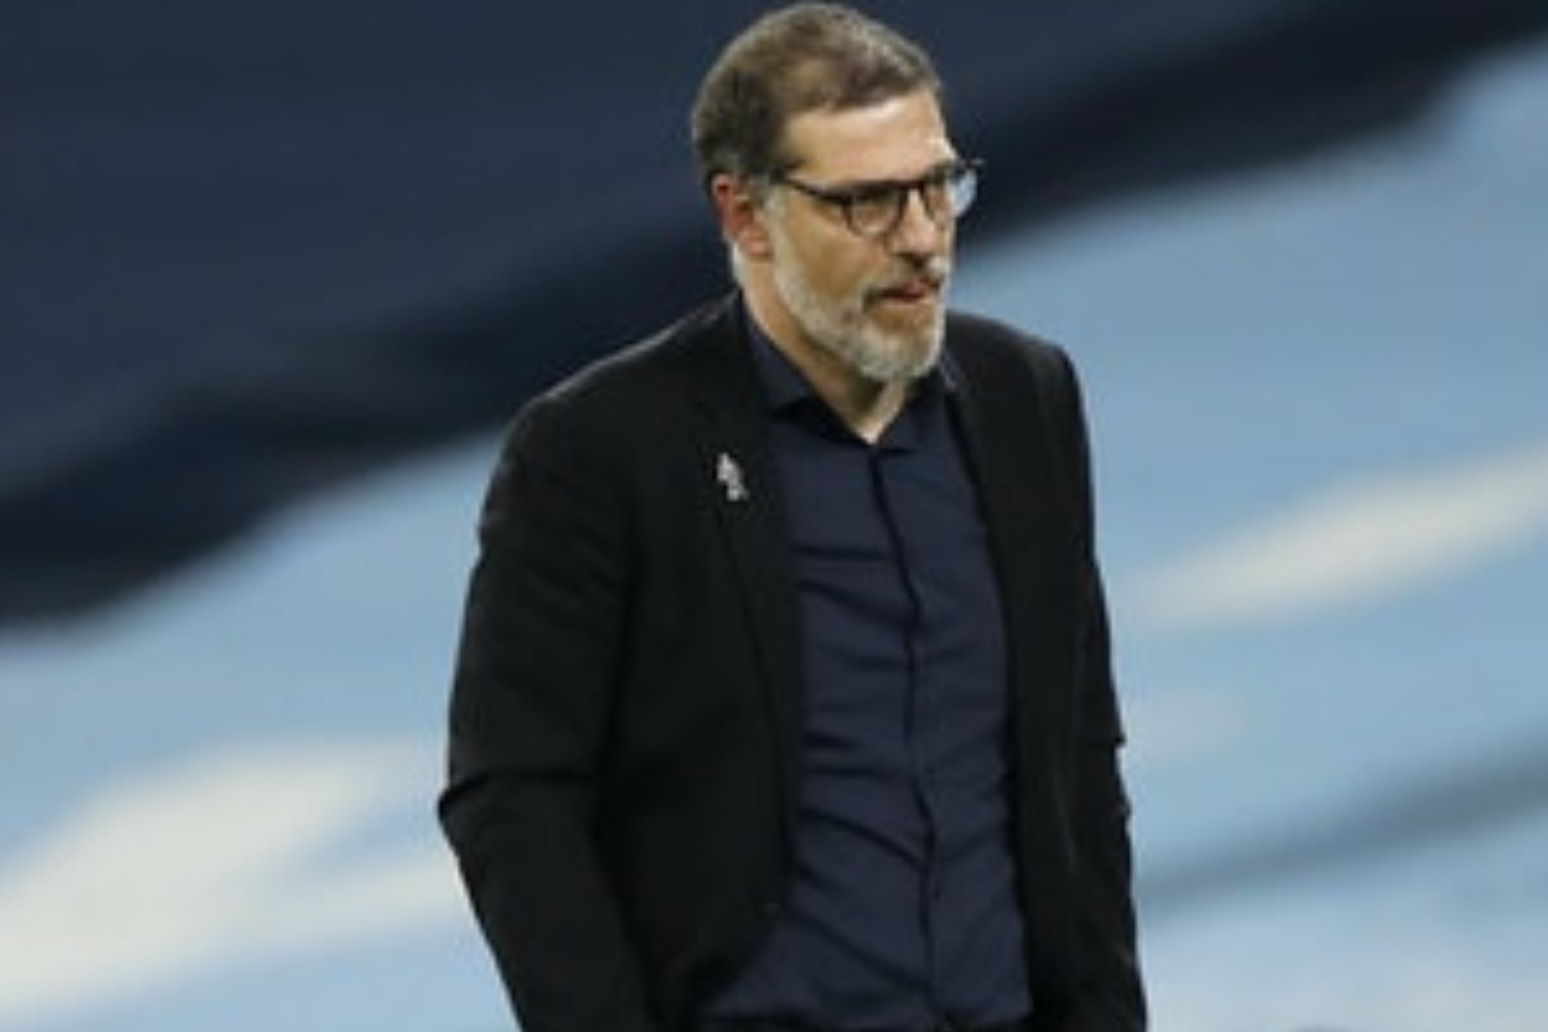 Slaven Bilic handed Beijing Guoan reins three weeks after West Brom dismissal